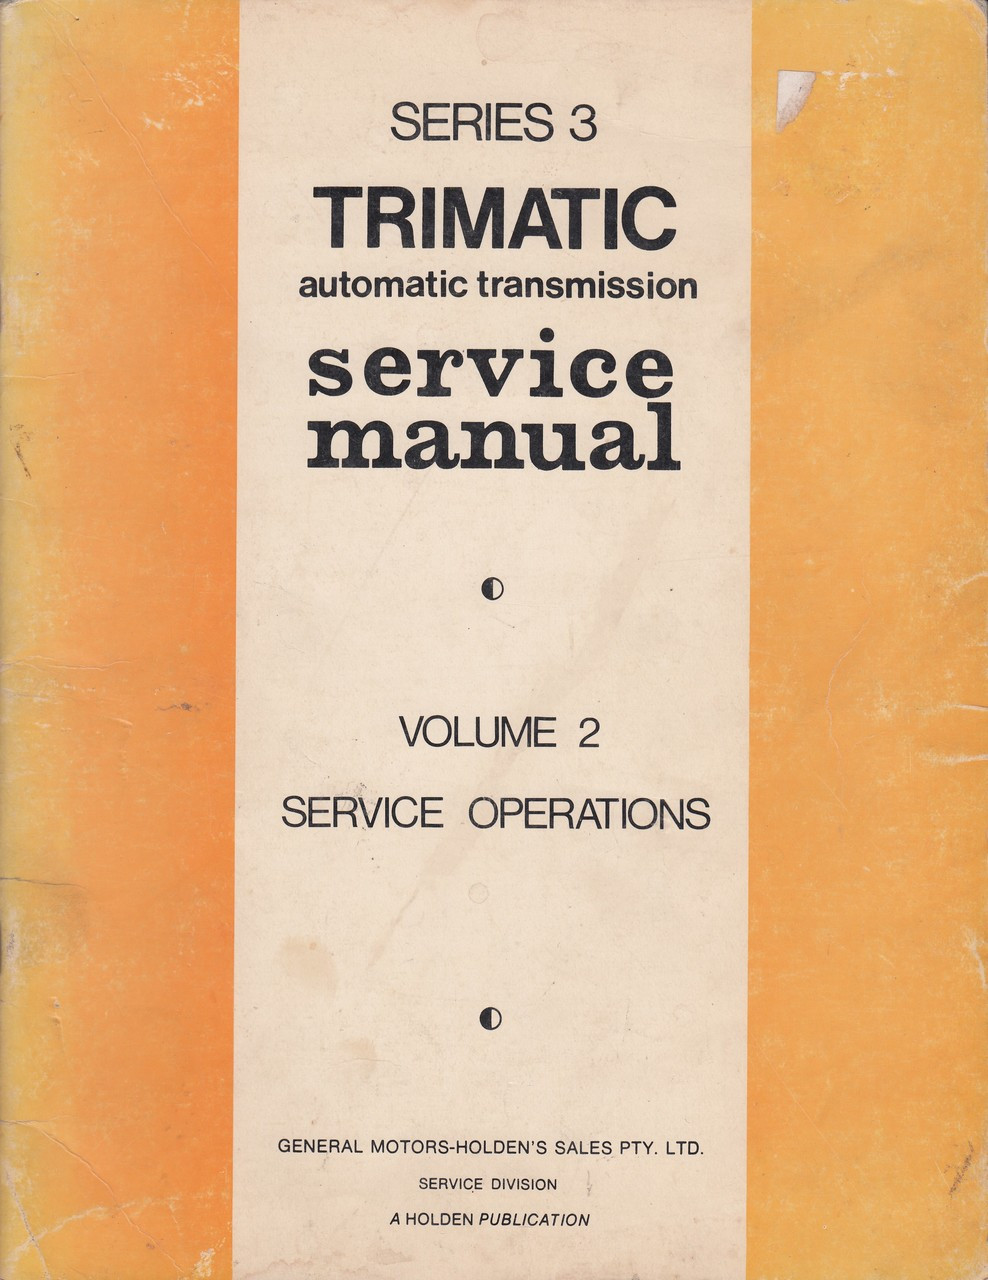 medium resolution of holden series 3 trimatic automatic transmission service manual vol 2 service operations